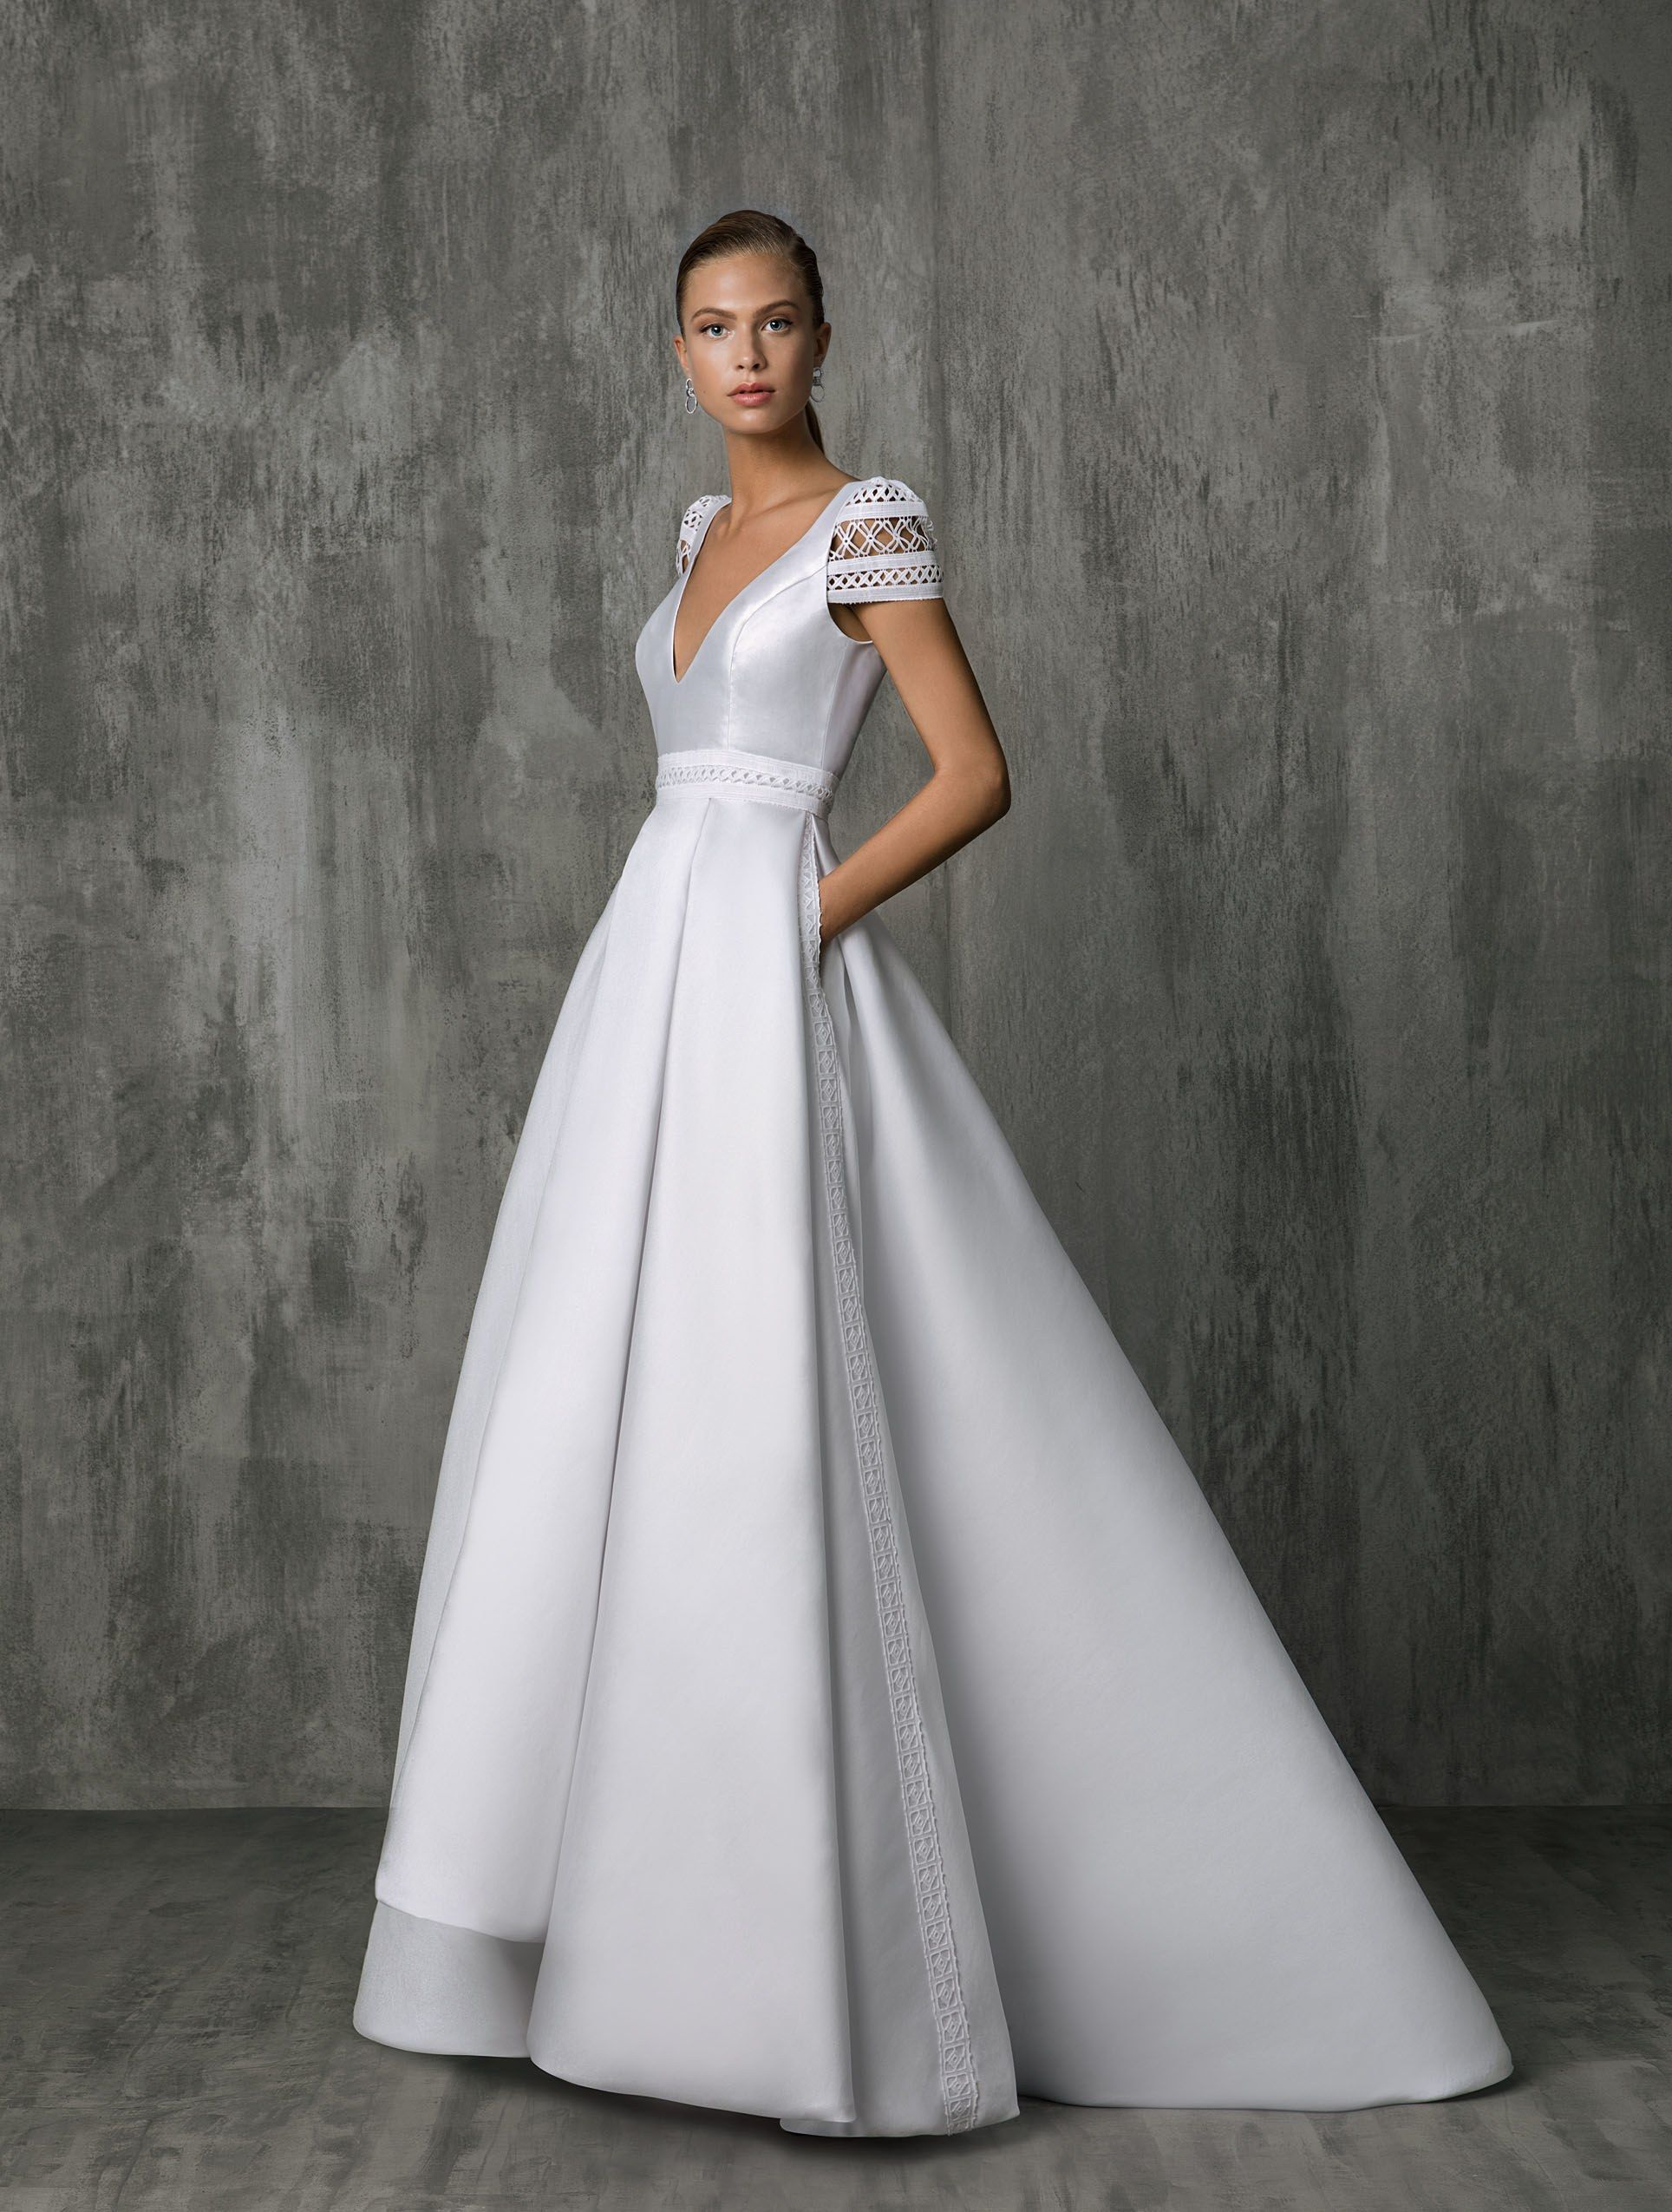 01062898d96 Victoria Kyriakides Bridal   Wedding Dress Collection Fall 2018 ...